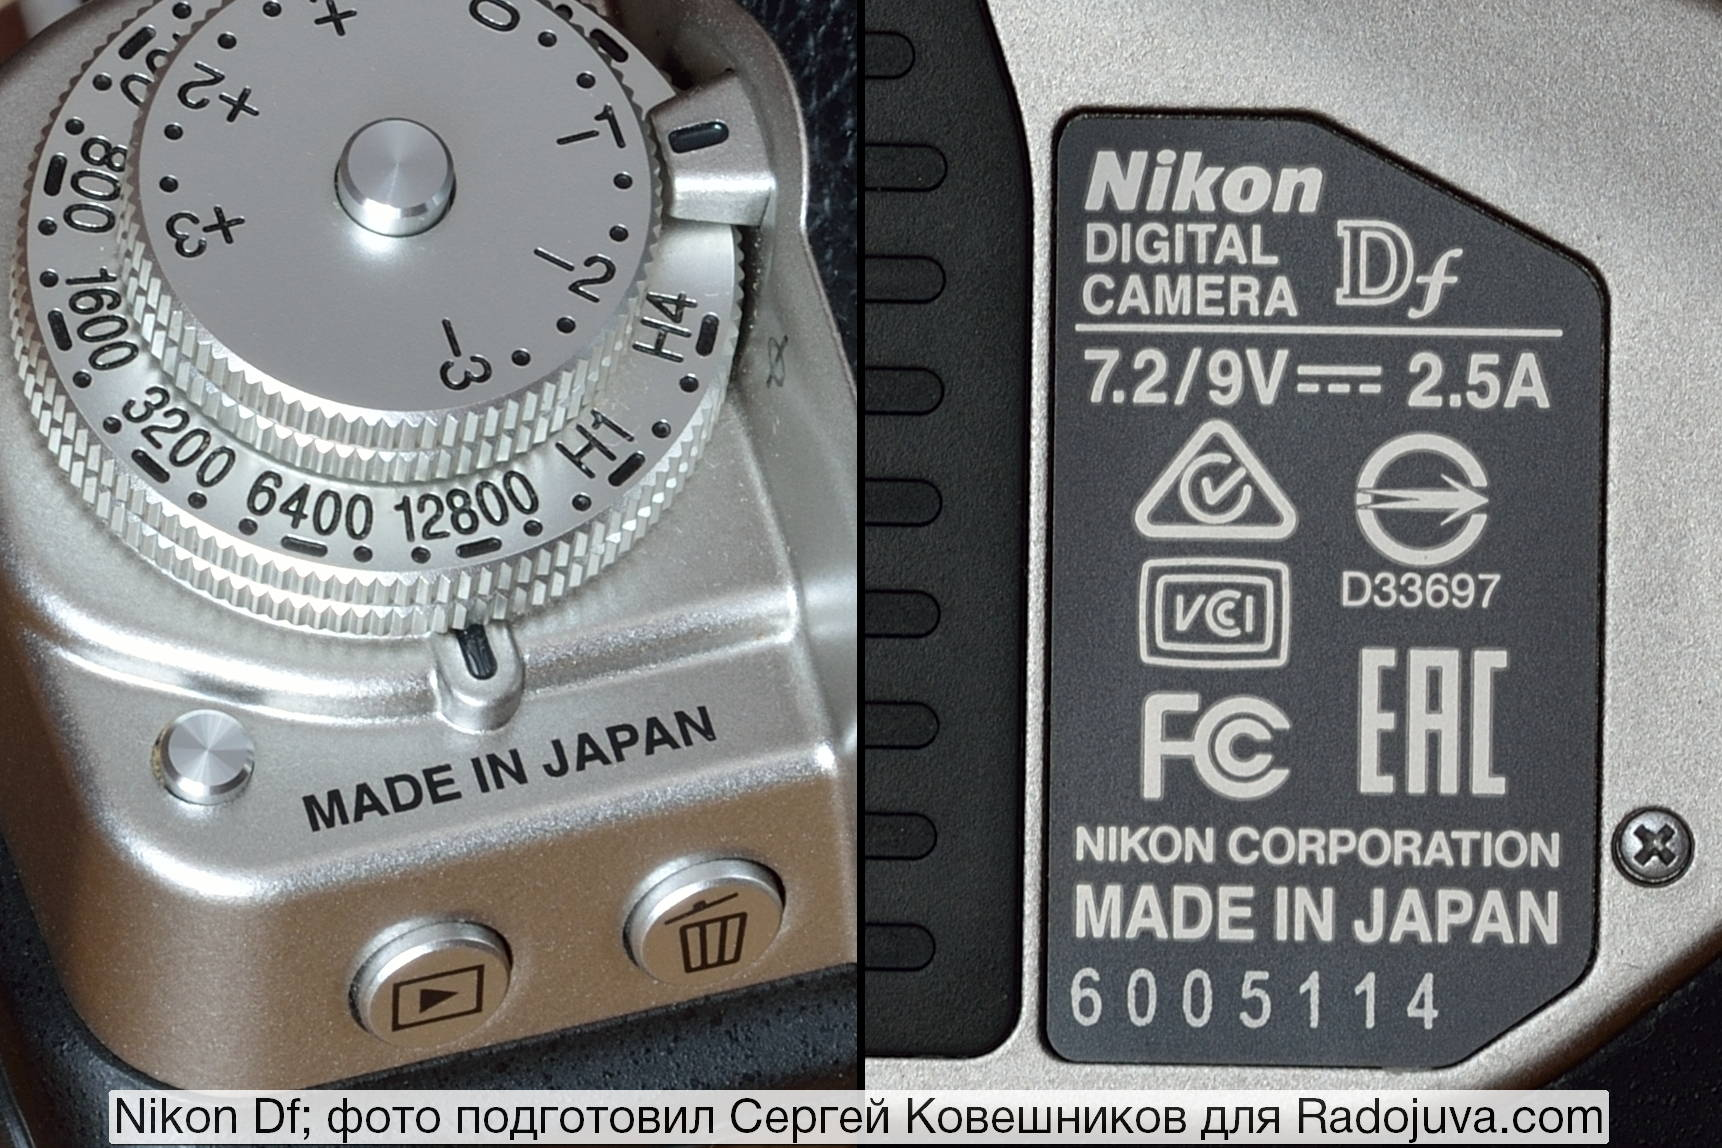 Nikon DF – made in Japan